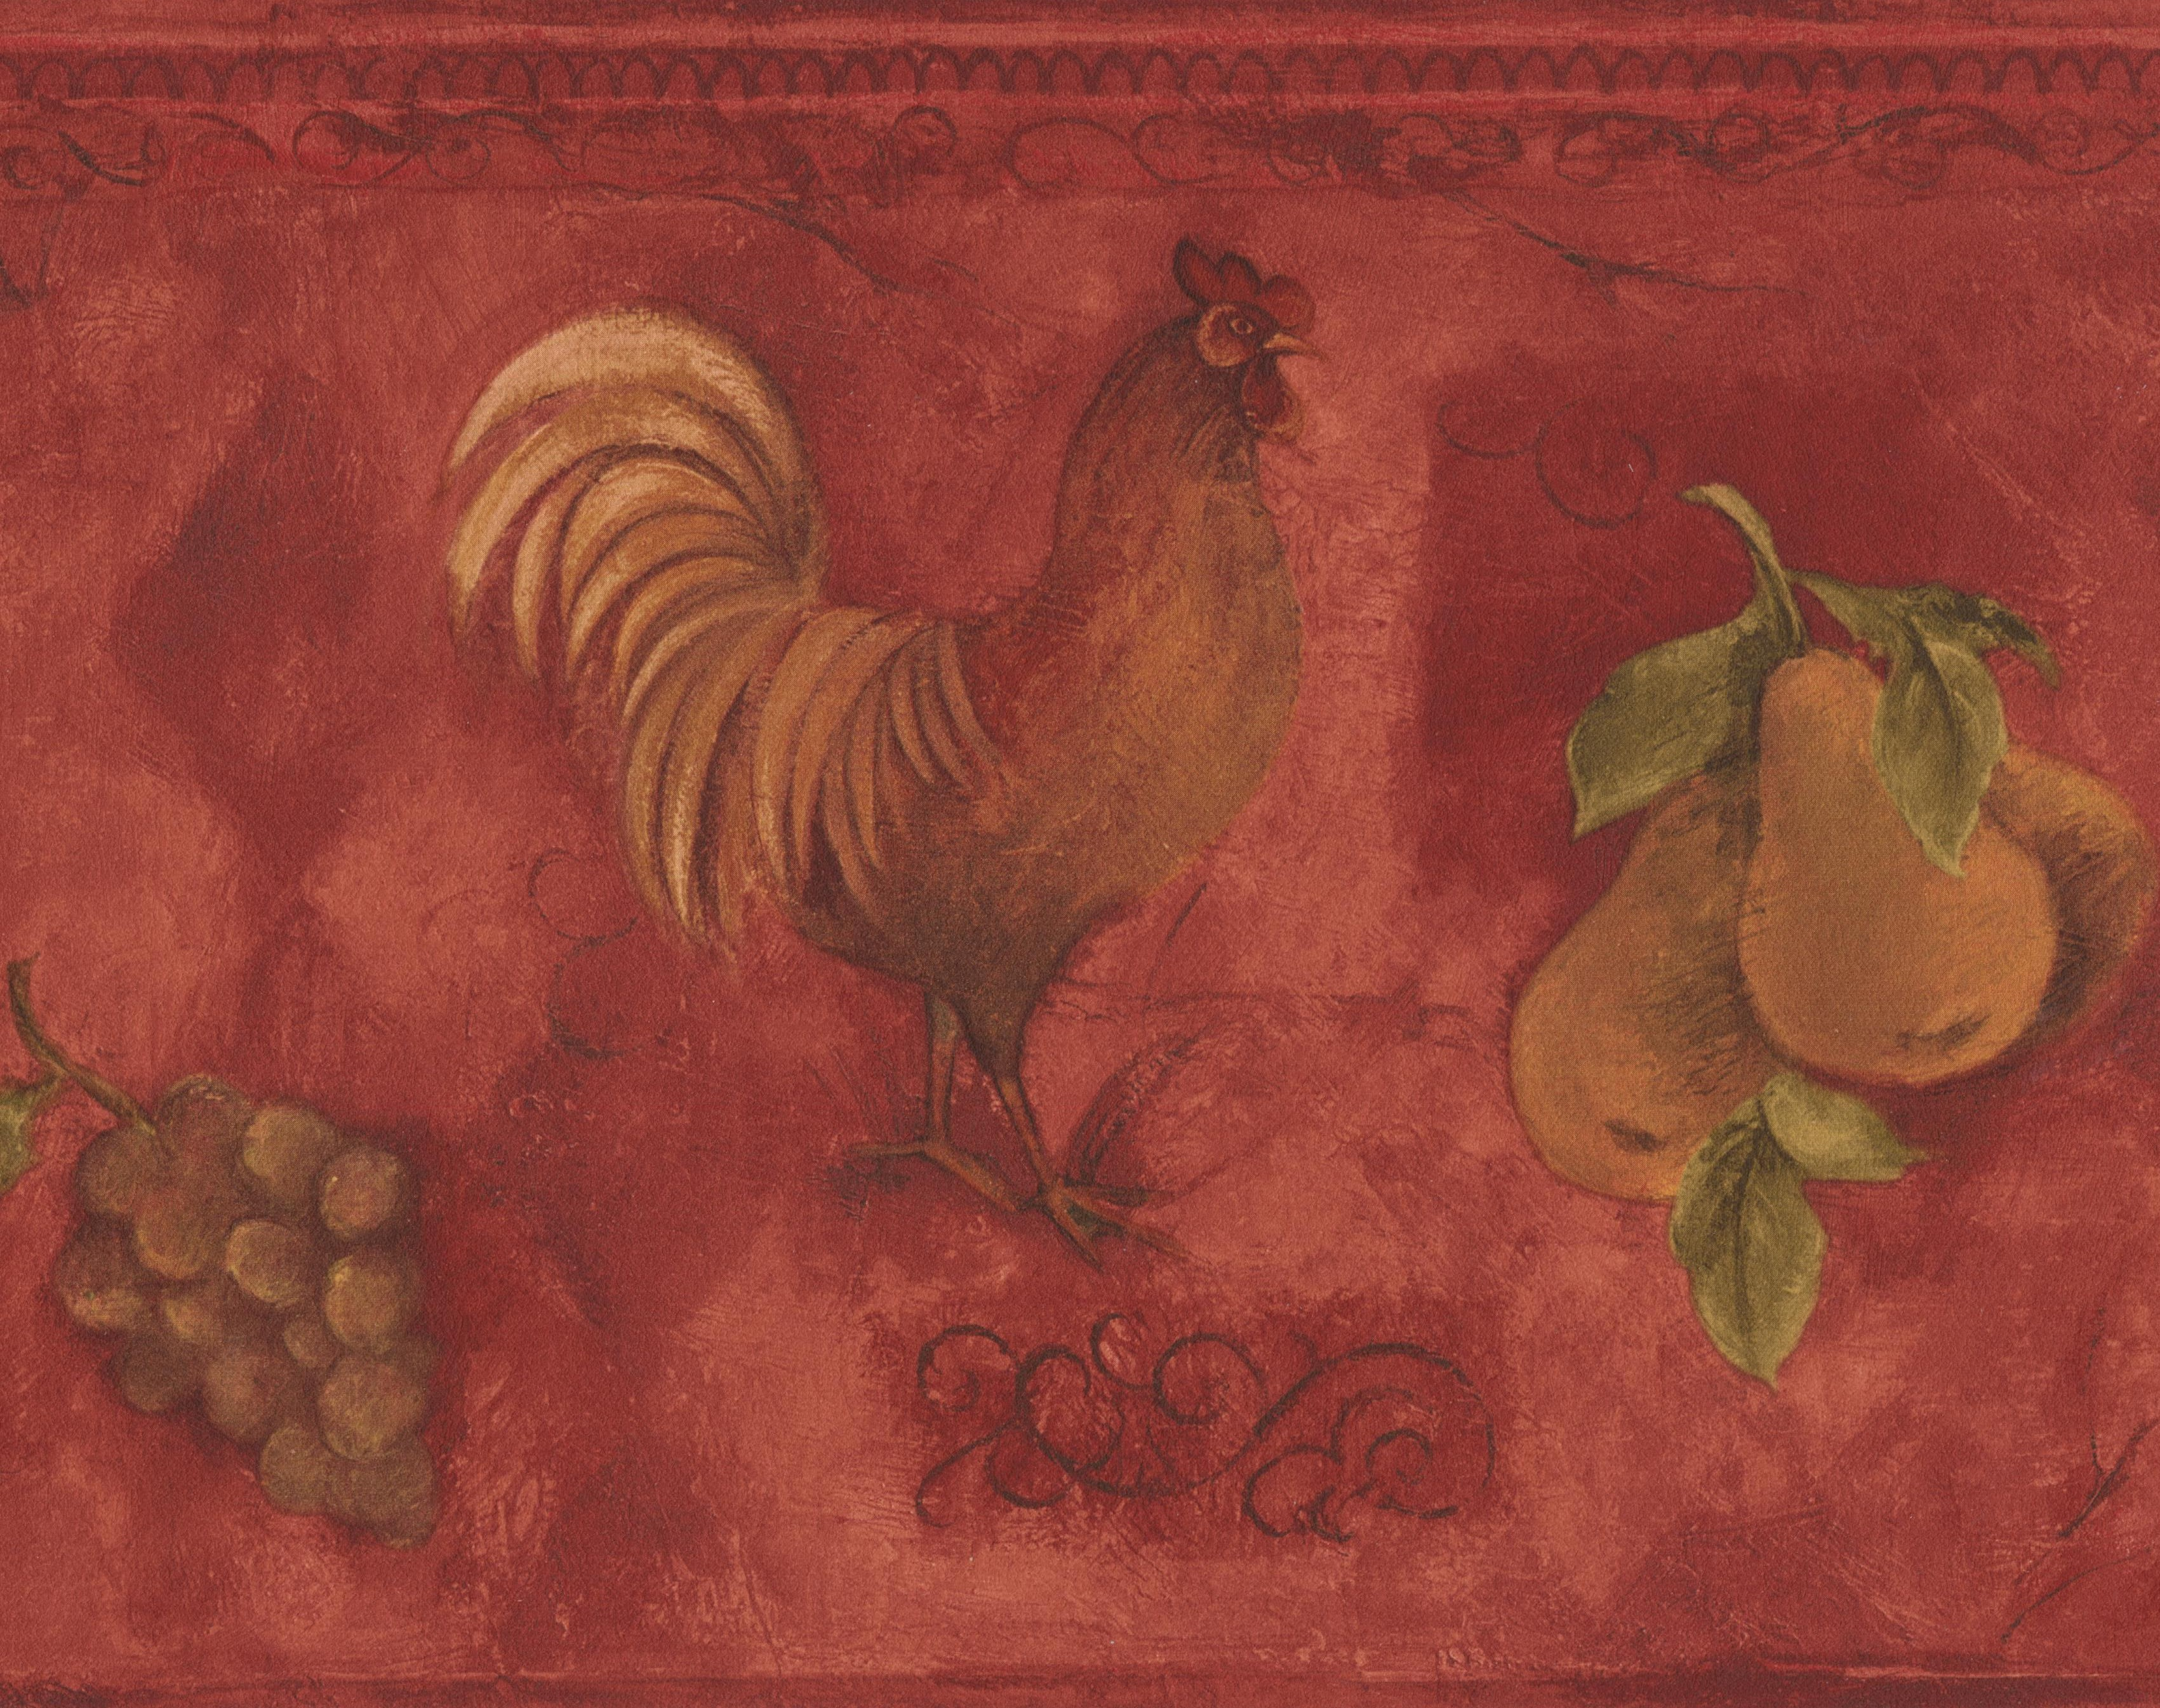 Rooster Grapes Pears Cherries Red Wallpaper Border Paint By Design Roll 15 X 9